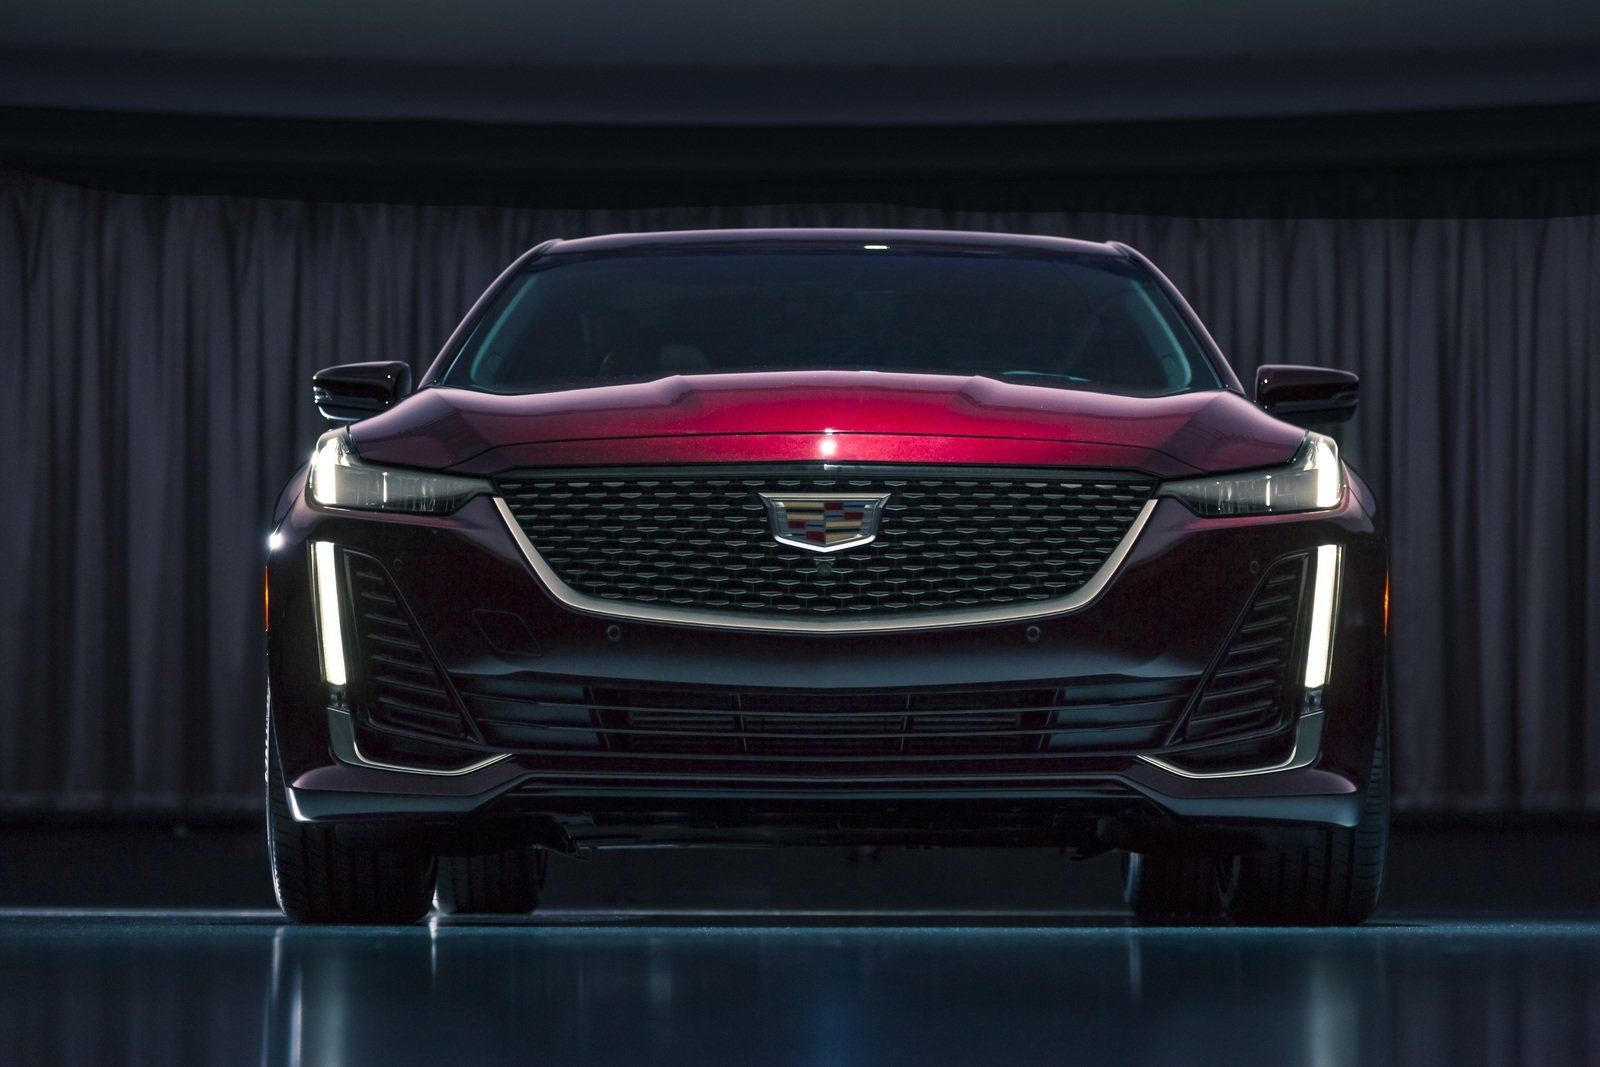 2019 Cadillac CT5 Pictures, Photos, Wallpapers And Video ...